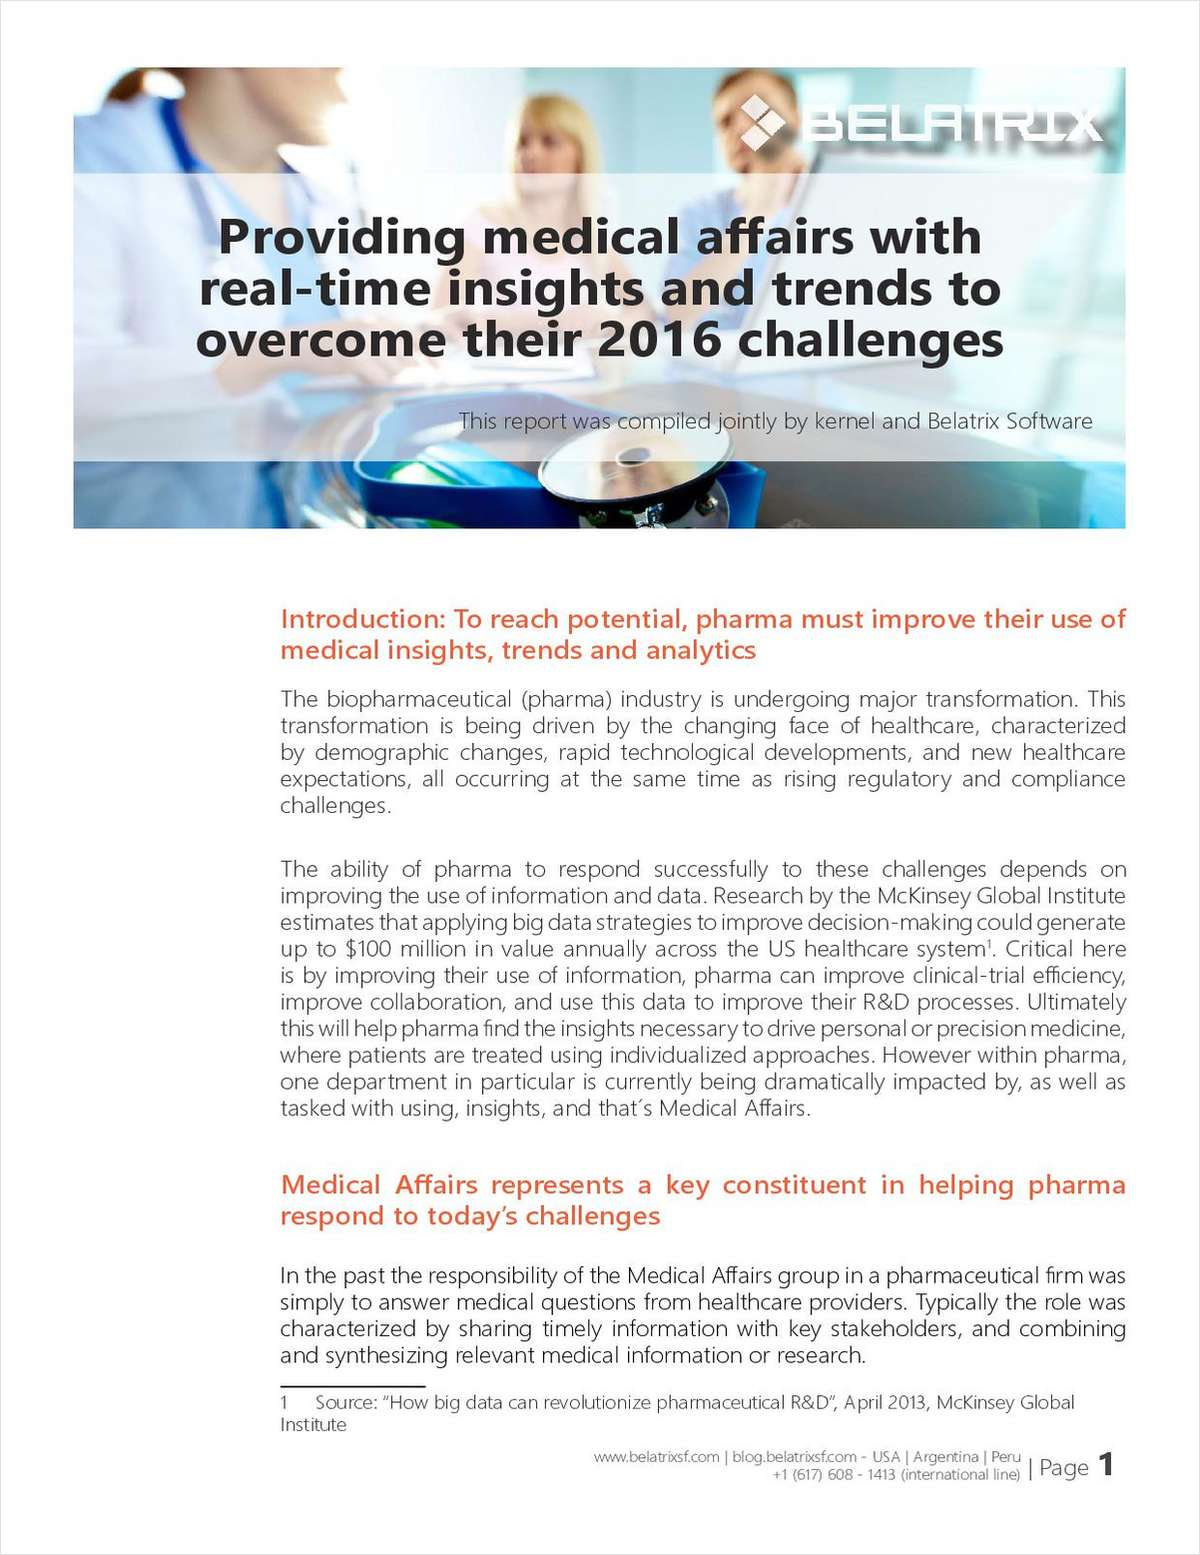 Providing Medical Affairs with Real Time Insights and Trends to Overcome Their 2016 Challenges